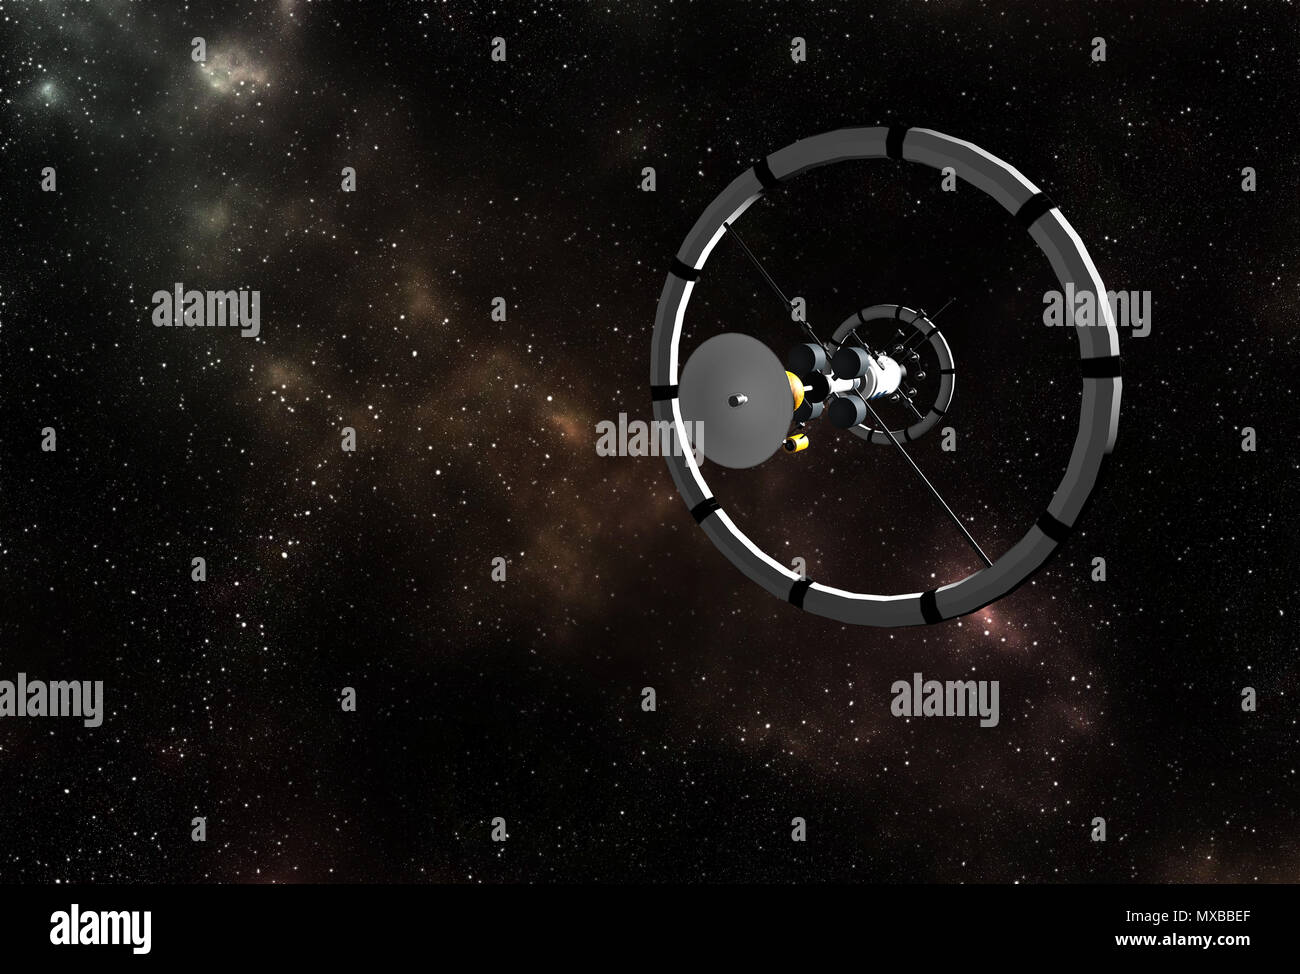 Interstellar spaceship flying to vibrant outer space with stars, nebula and planets. - Stock Image